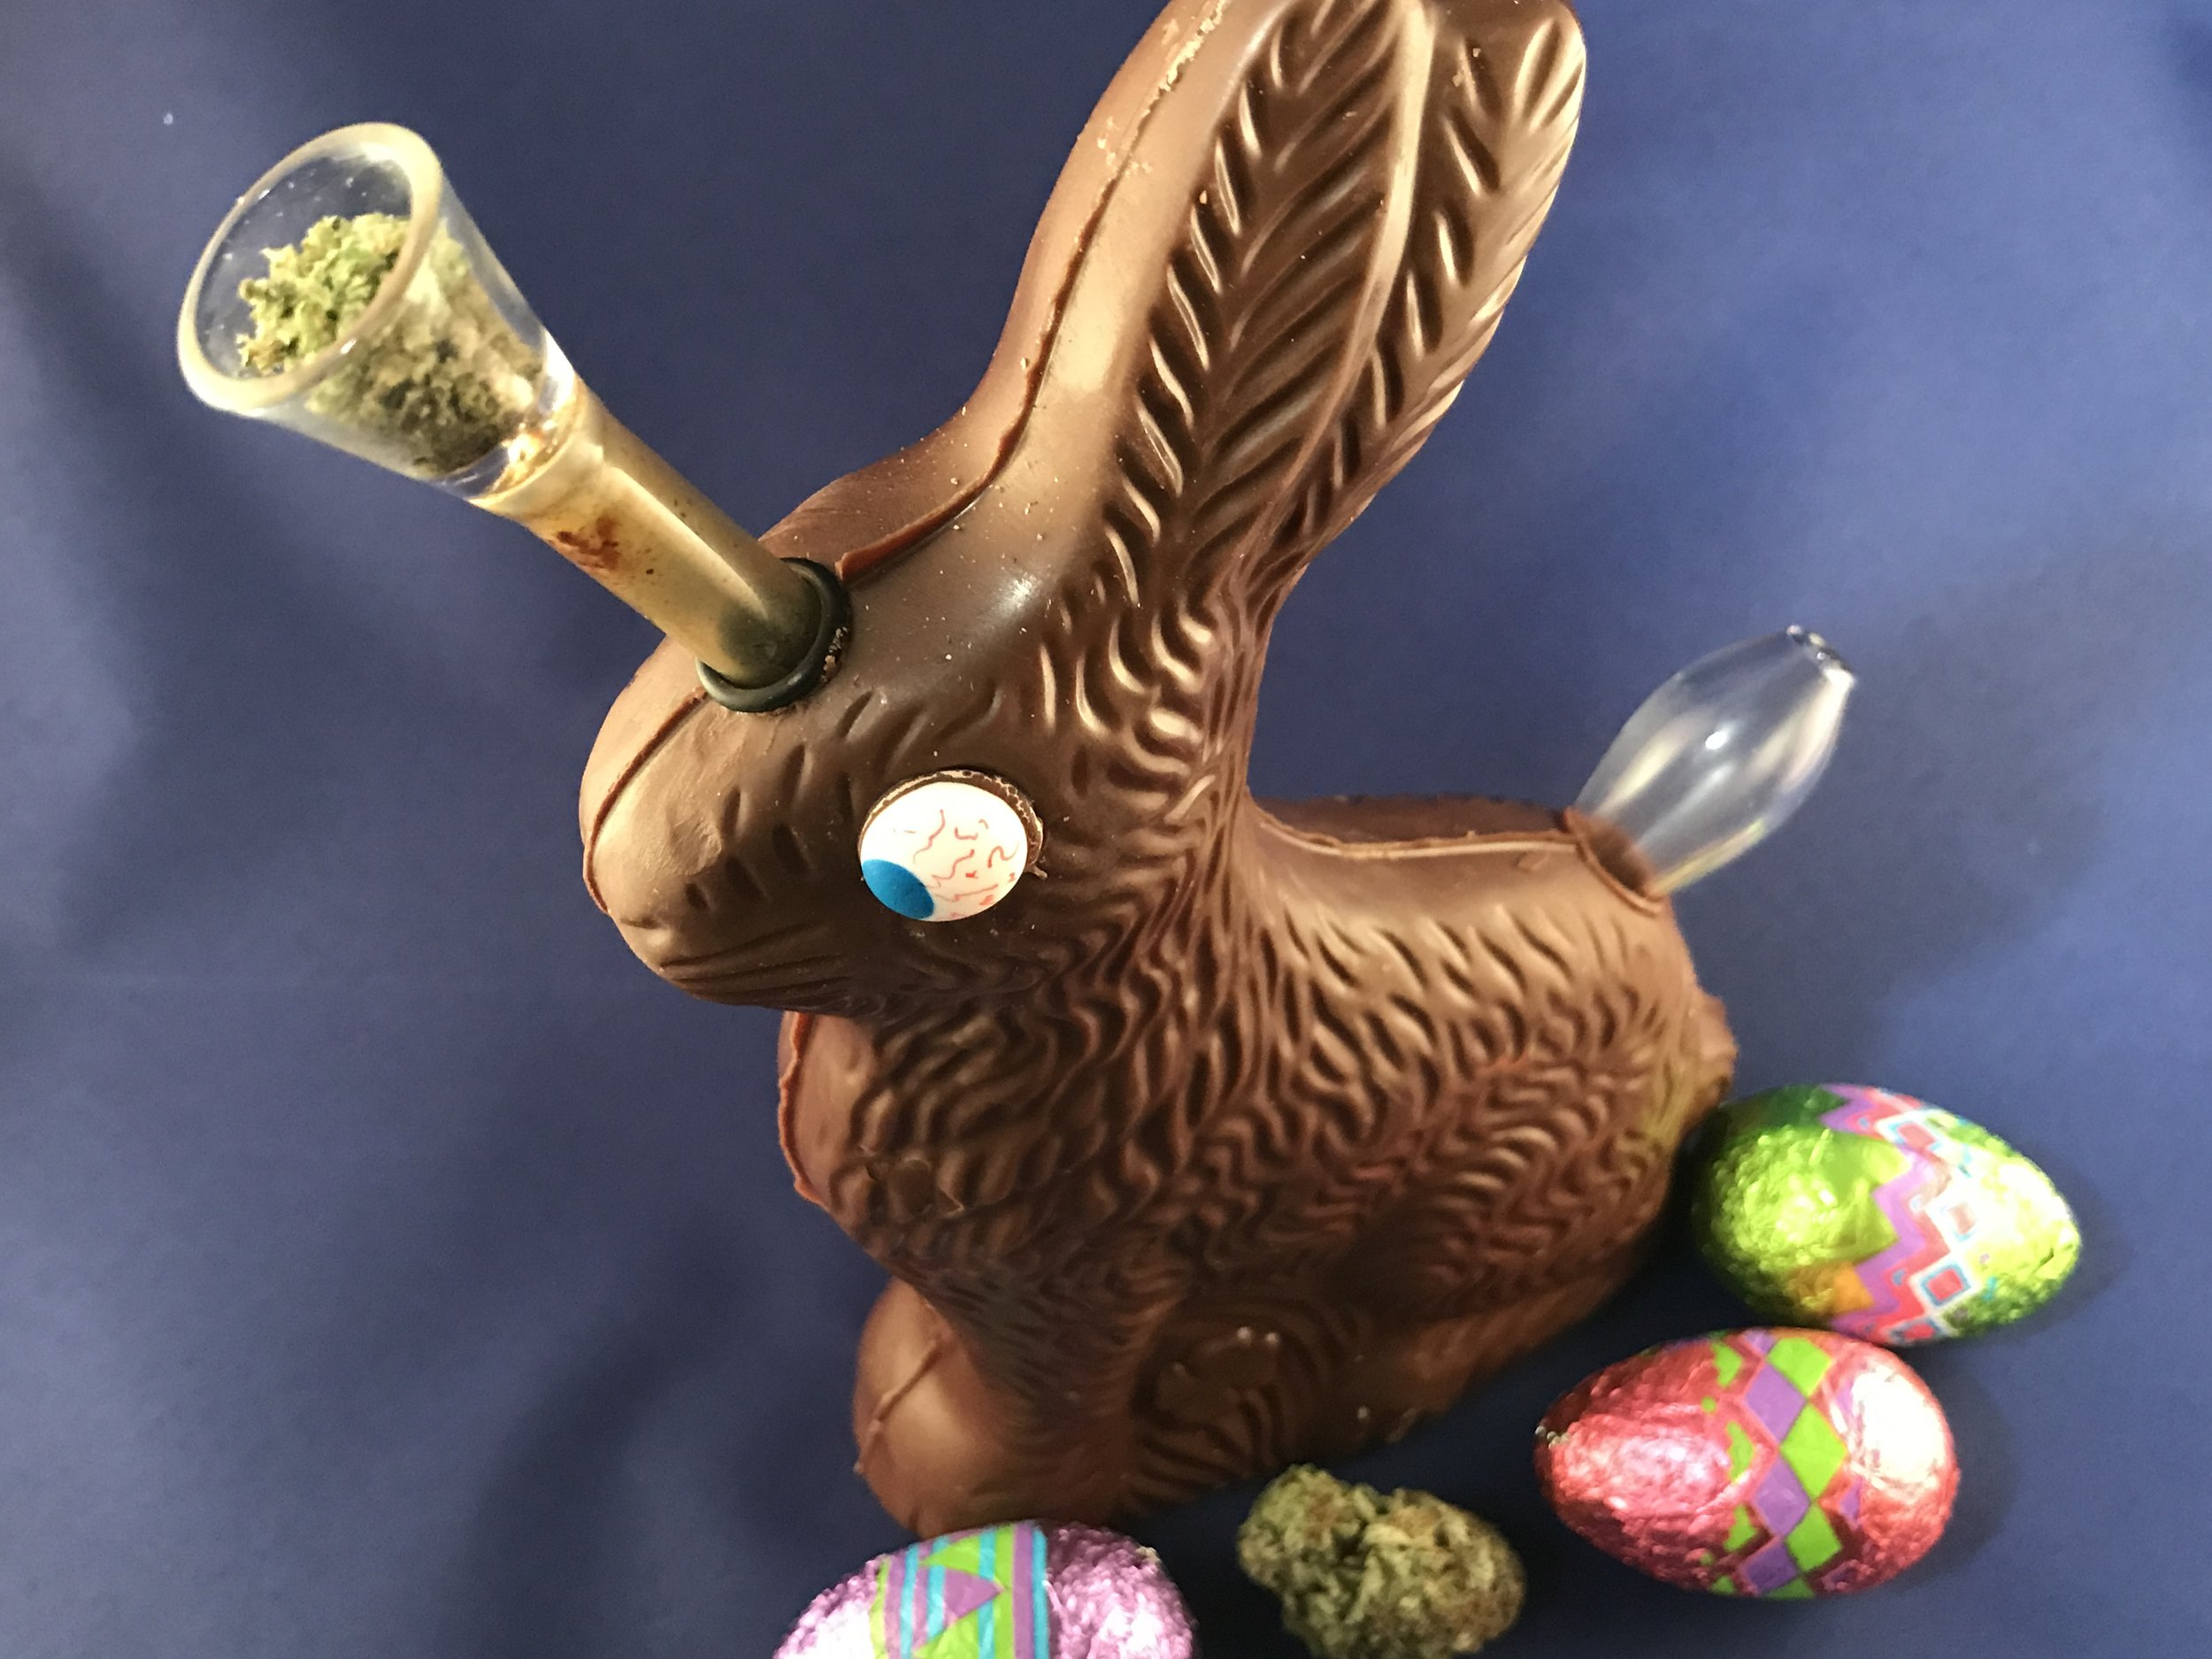 Chocolate Easter Bunny Pipe: Stoner Food Pipe